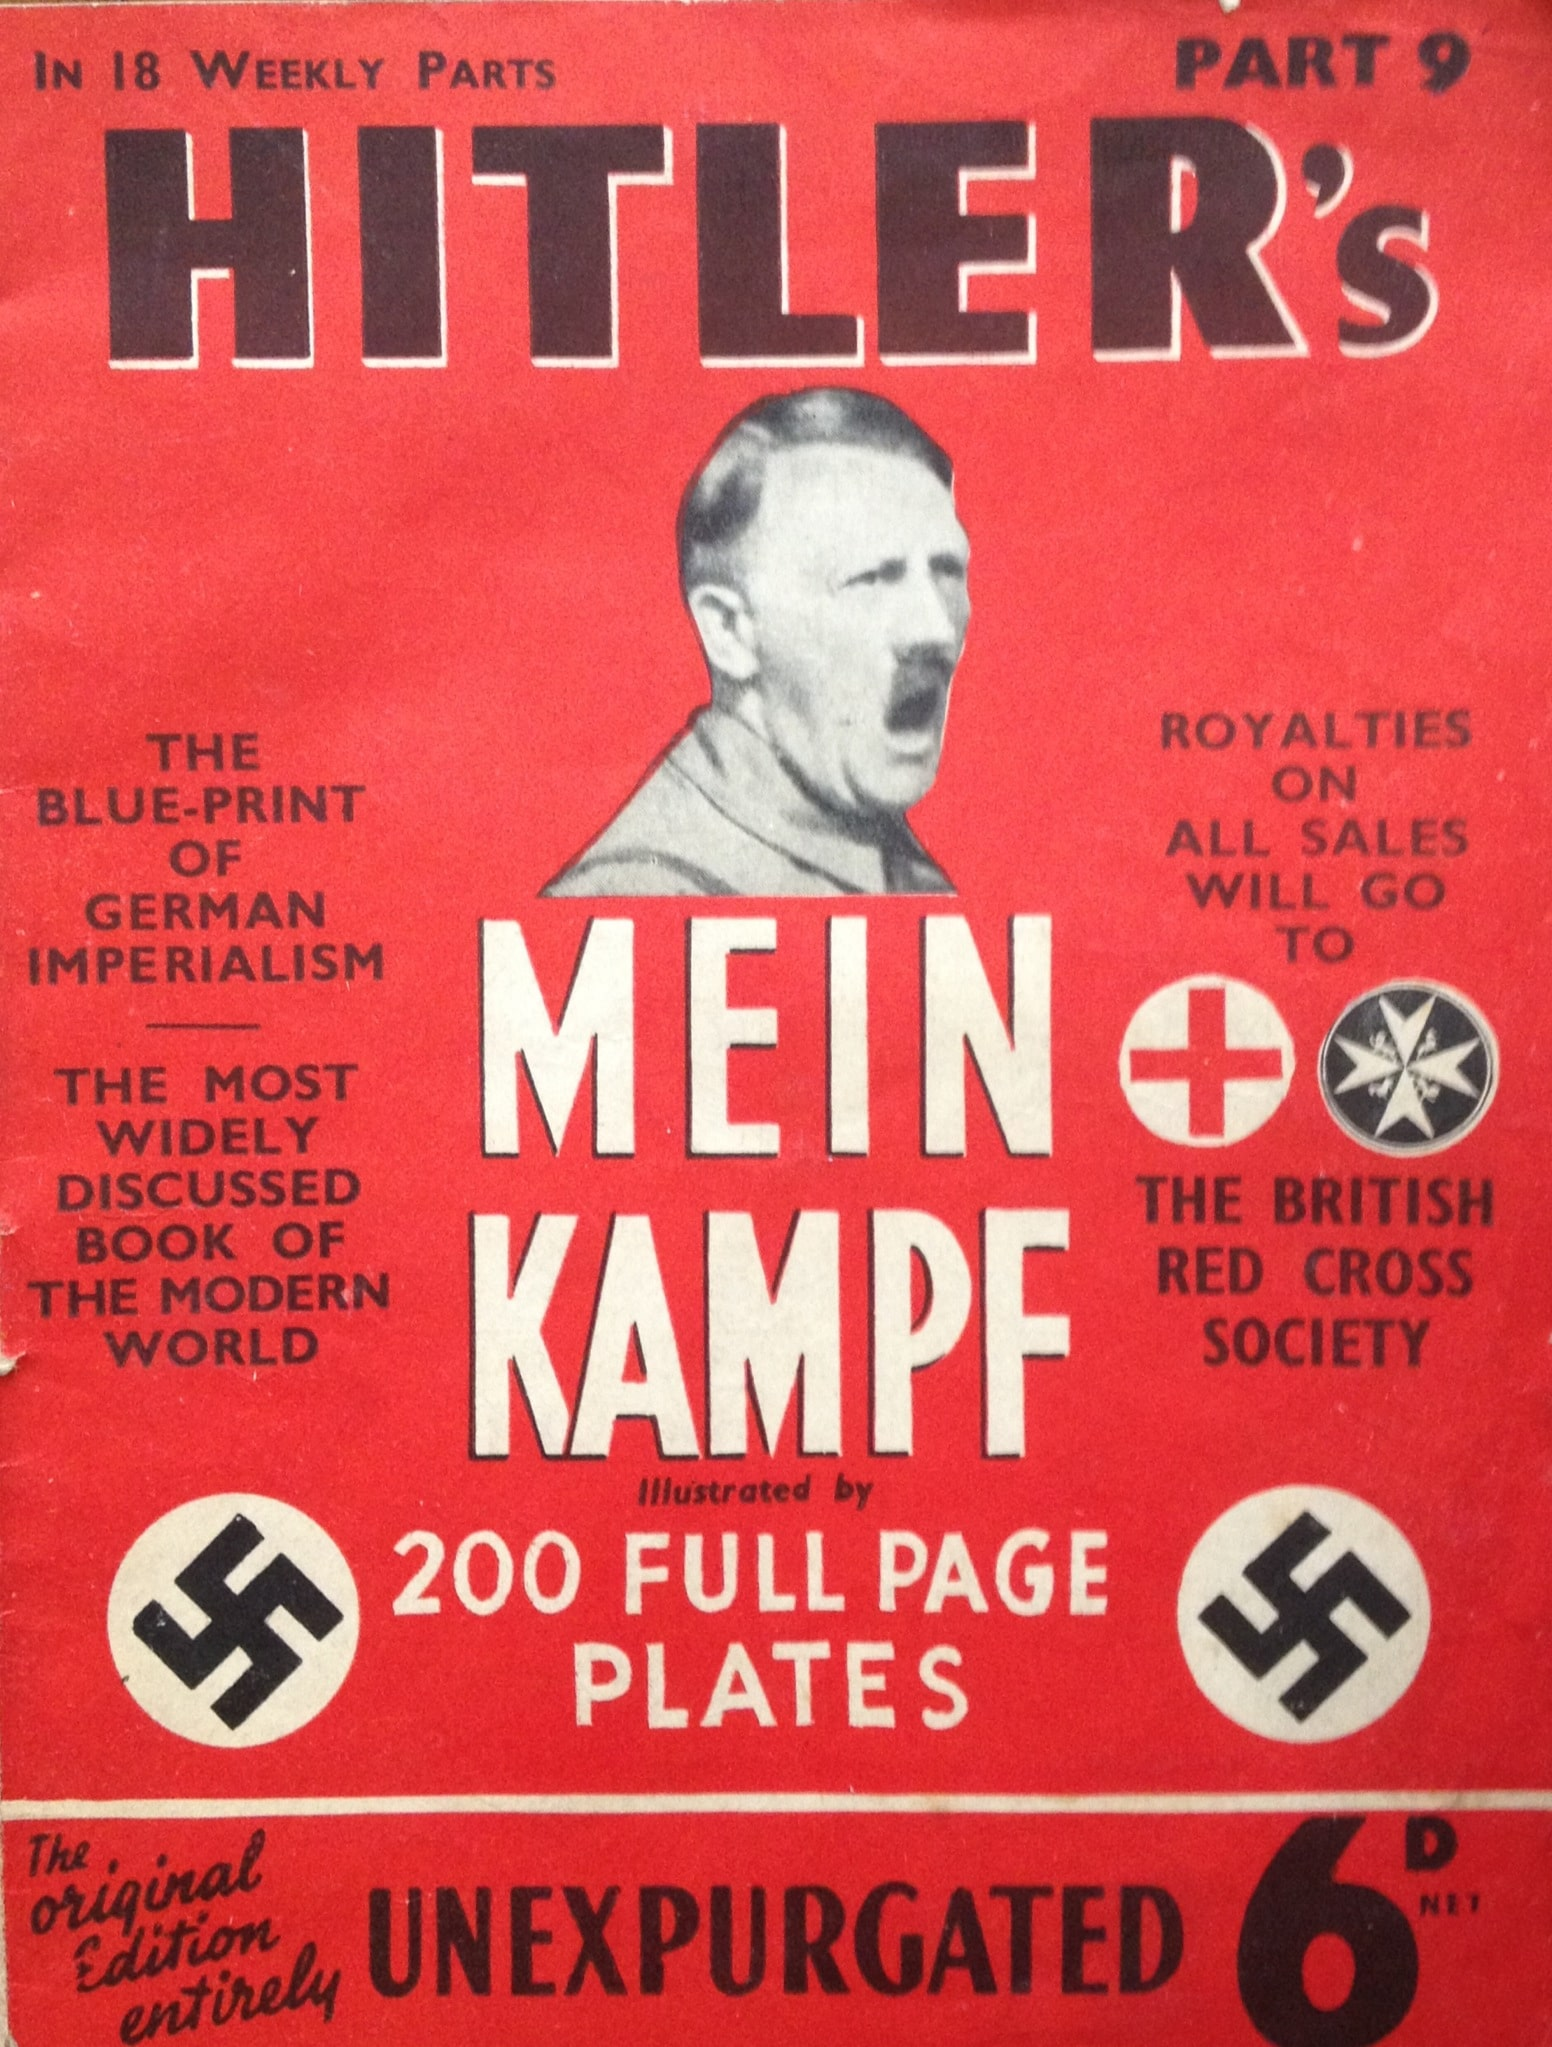 hitlers mein kampf In january 2016, the institute of contemporary history released the first reprint of adolf hitler's mein kampf since world war ii one year on, the german publisher says the book has sold some 85,000 copies and spent 35 weeks on der spiegel non-fiction best-seller list.